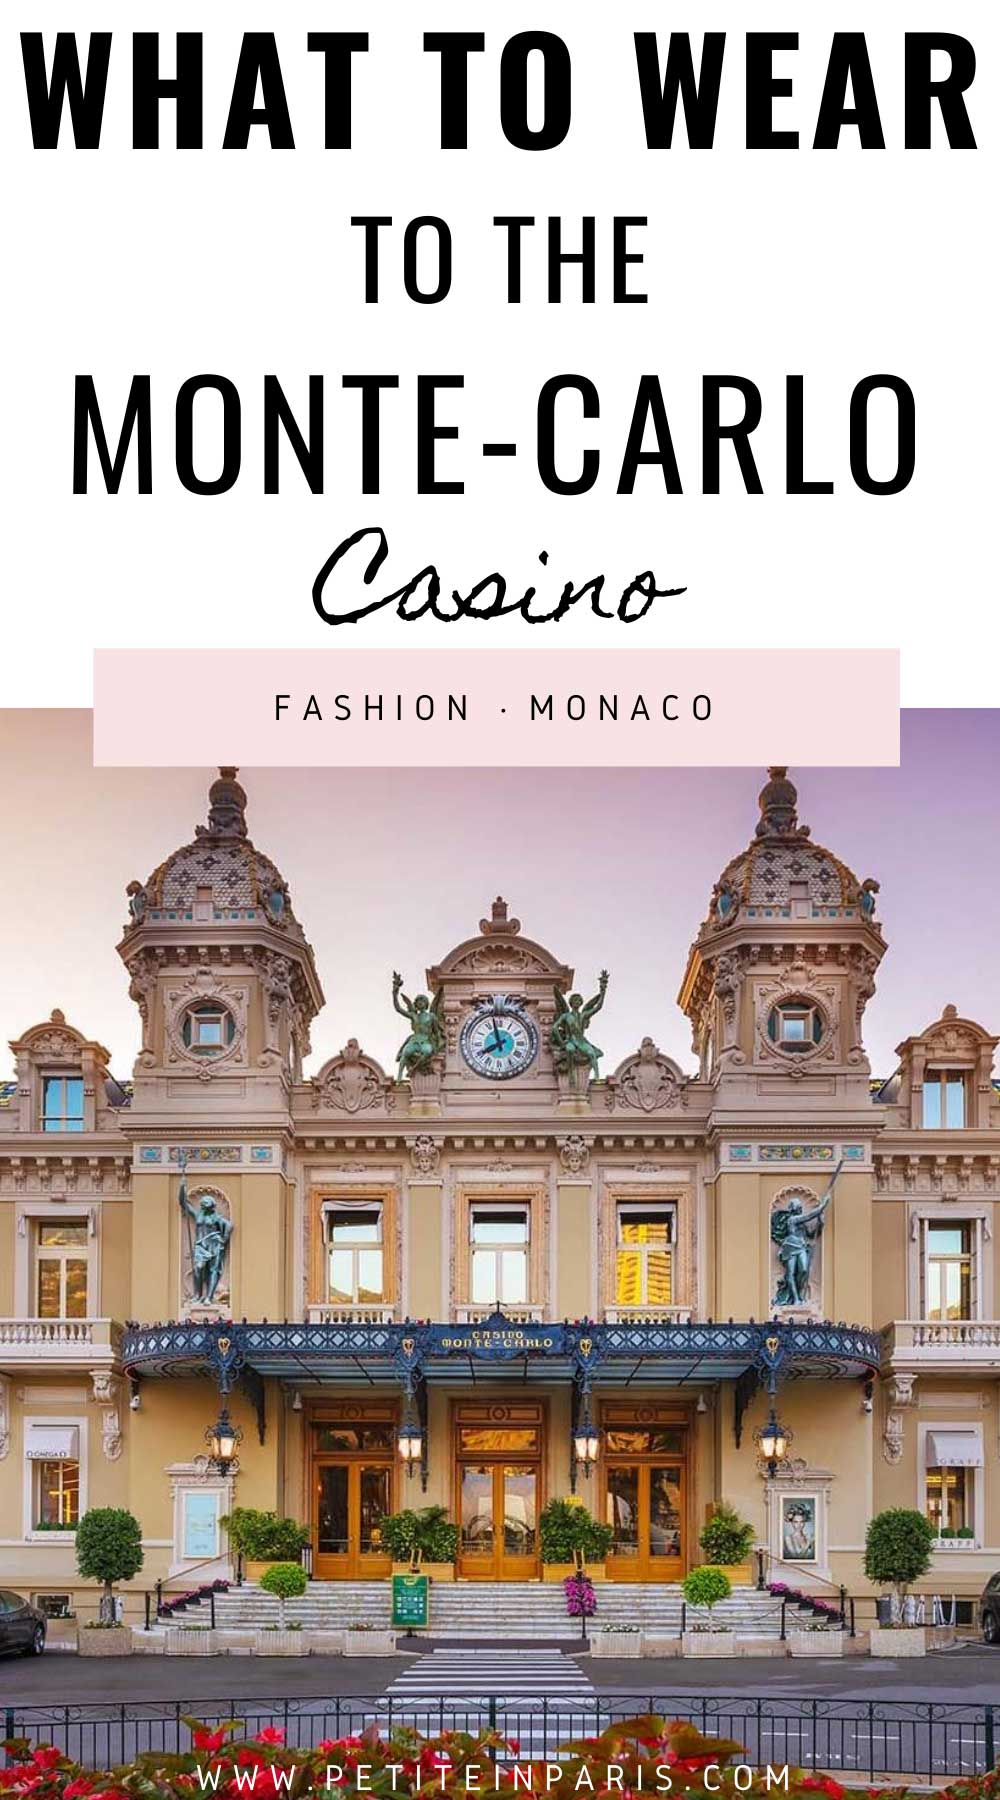 what to wear to the casino in monaco